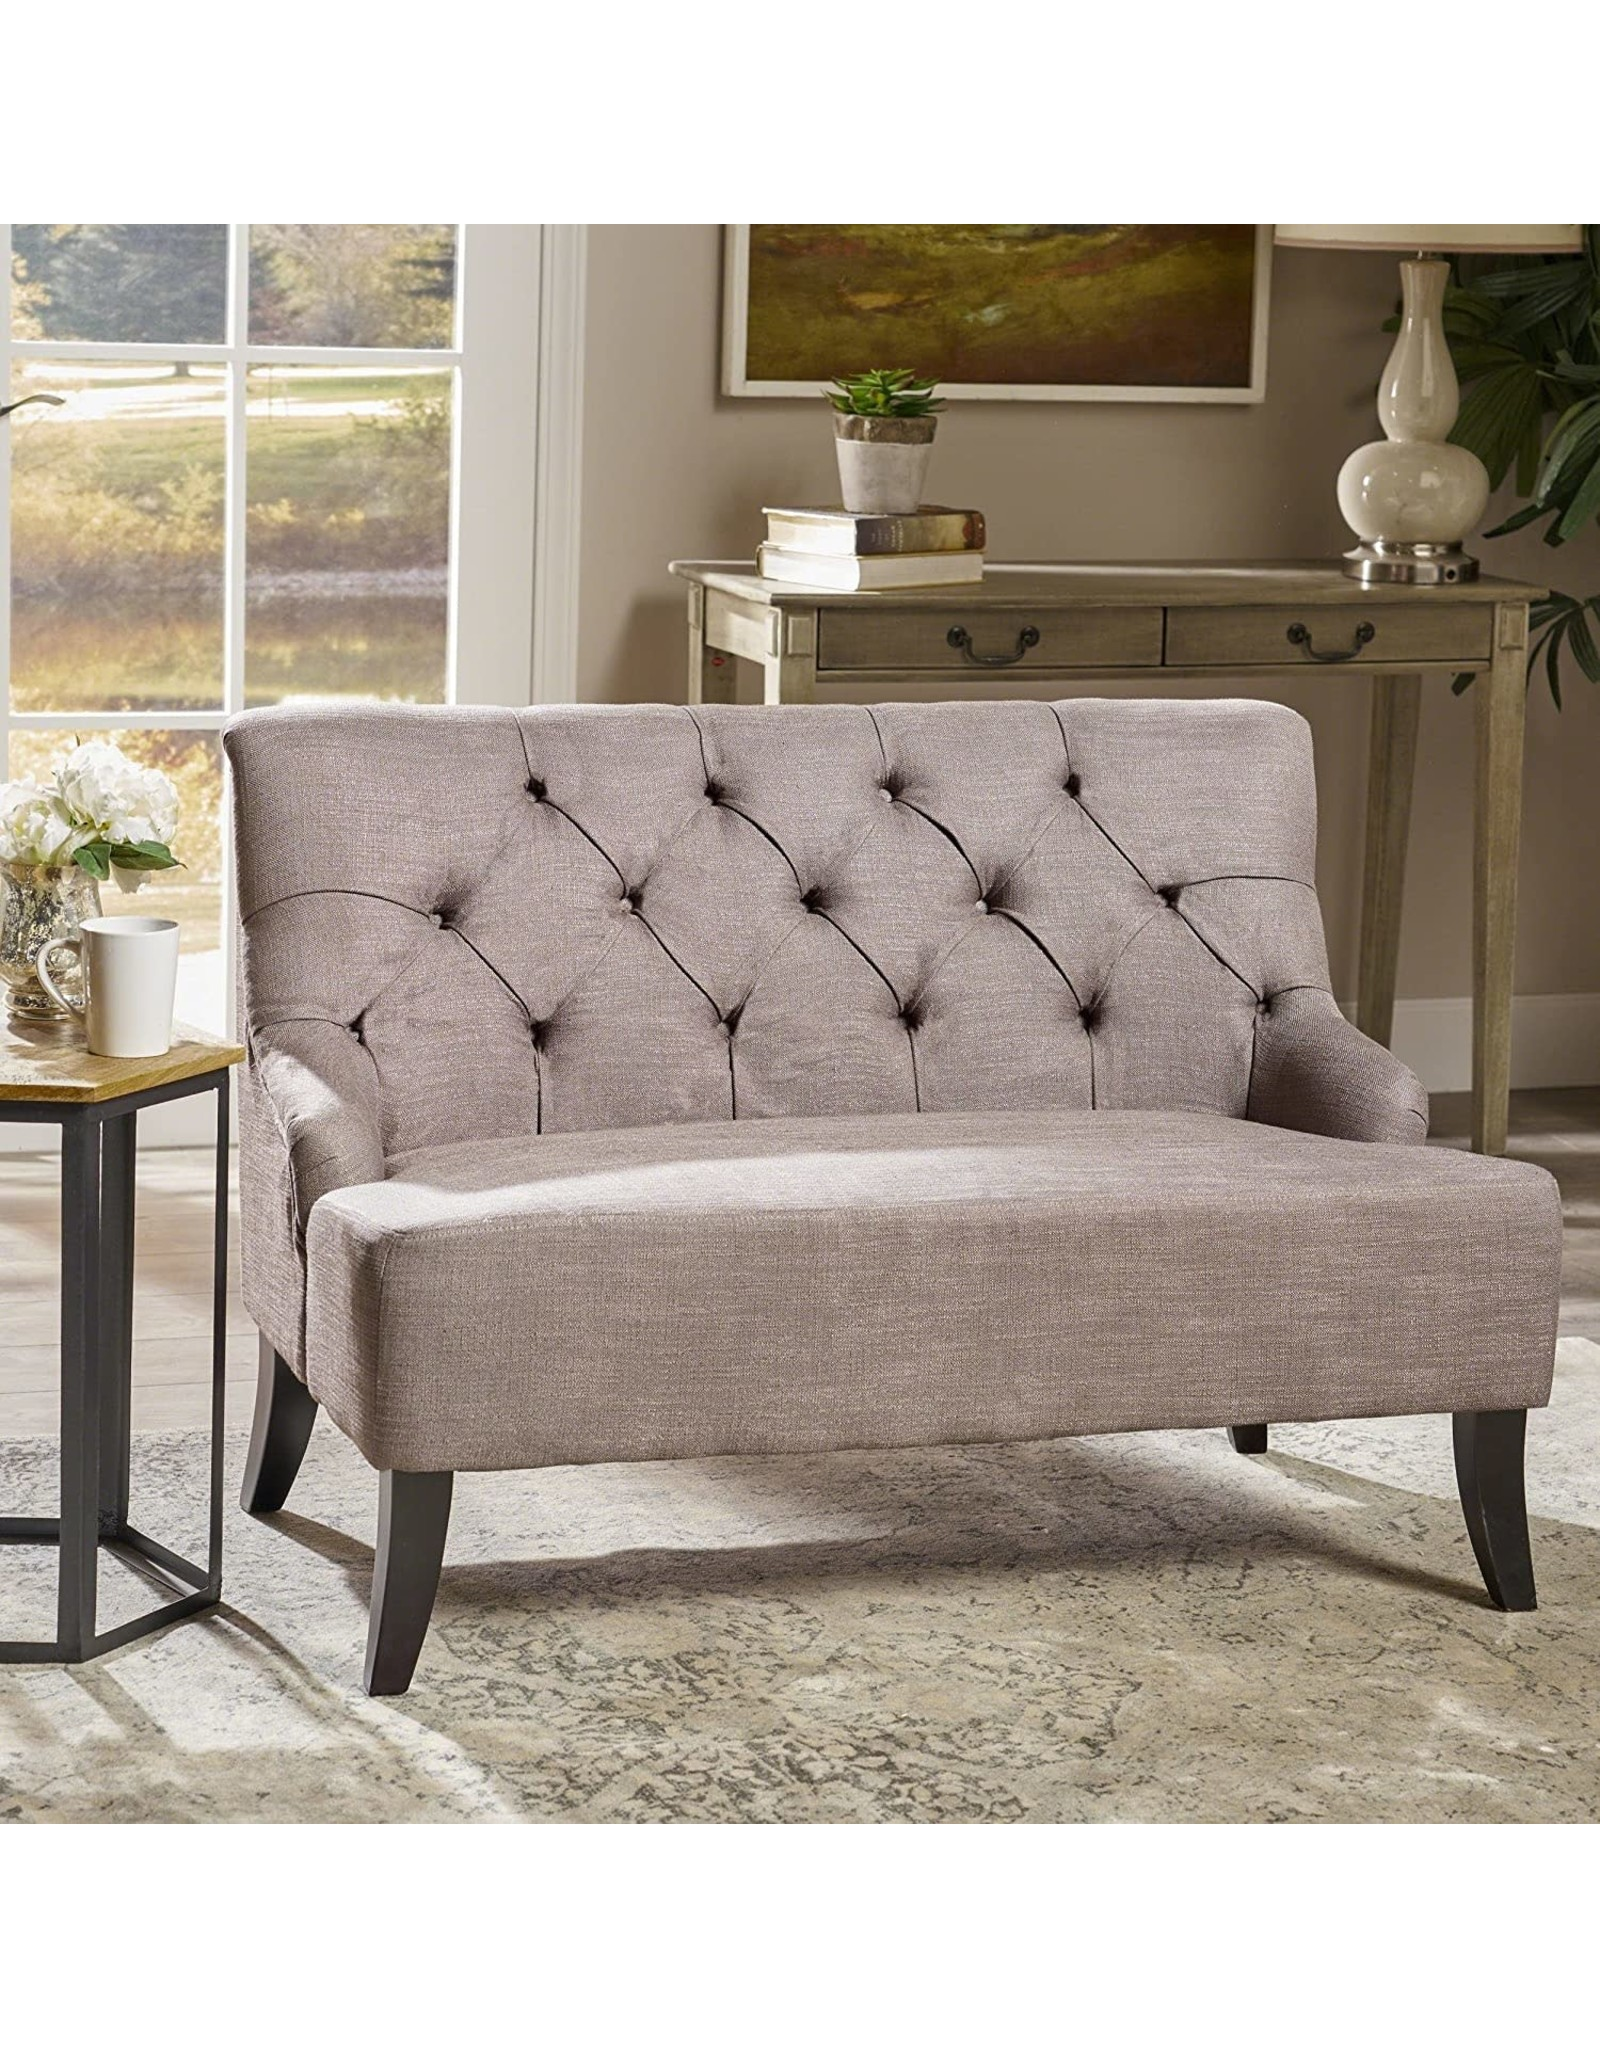 Christopher Knight Christopher Knight Home Nicole Fabric Settee, Grey, L 44.25 x W 29.75 x H 30.5